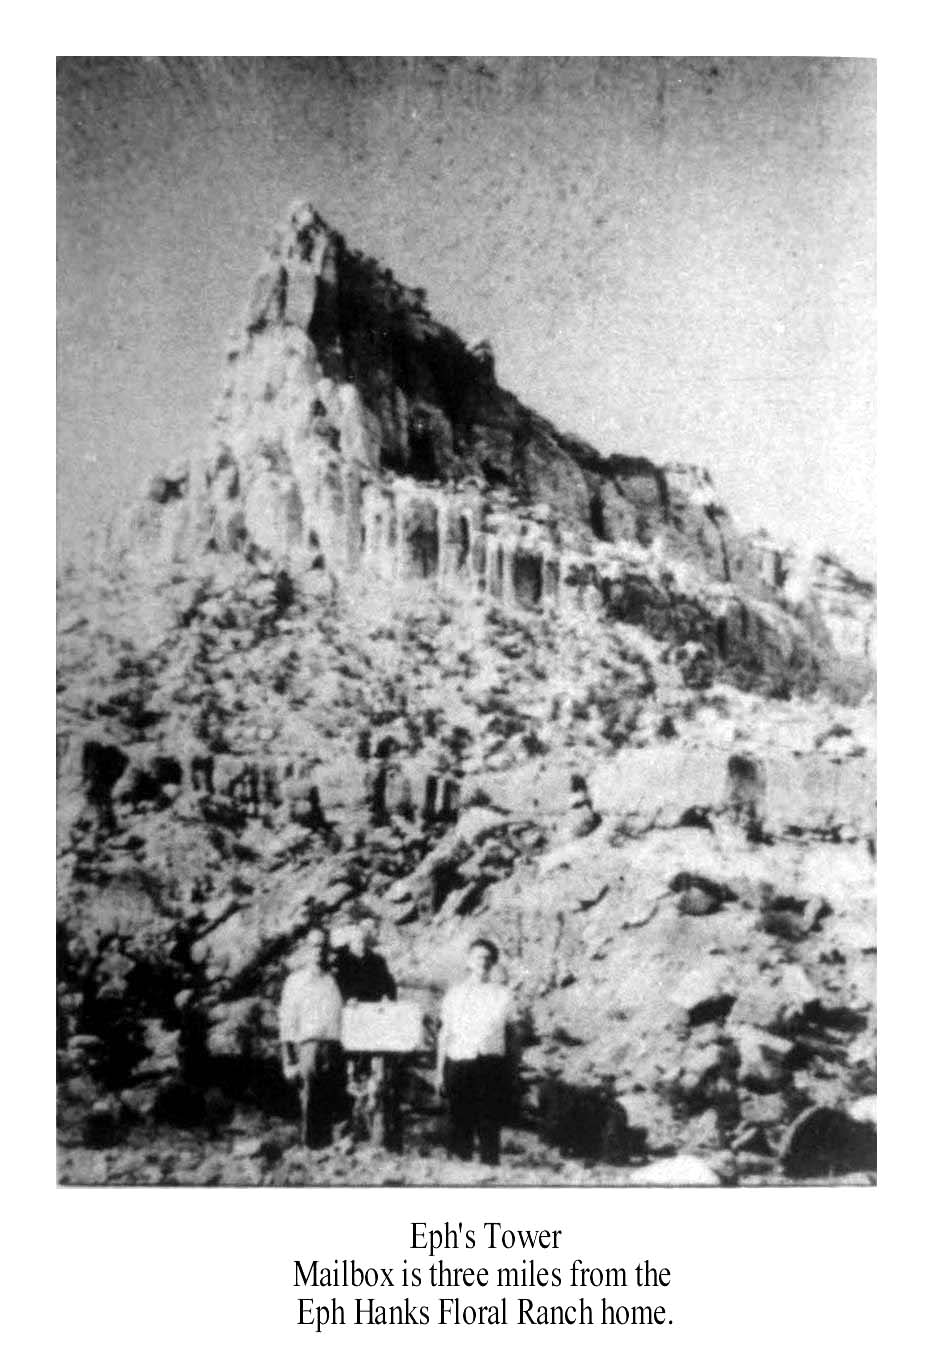 Eph's Tower. Teton Hanks Jackman Collection.